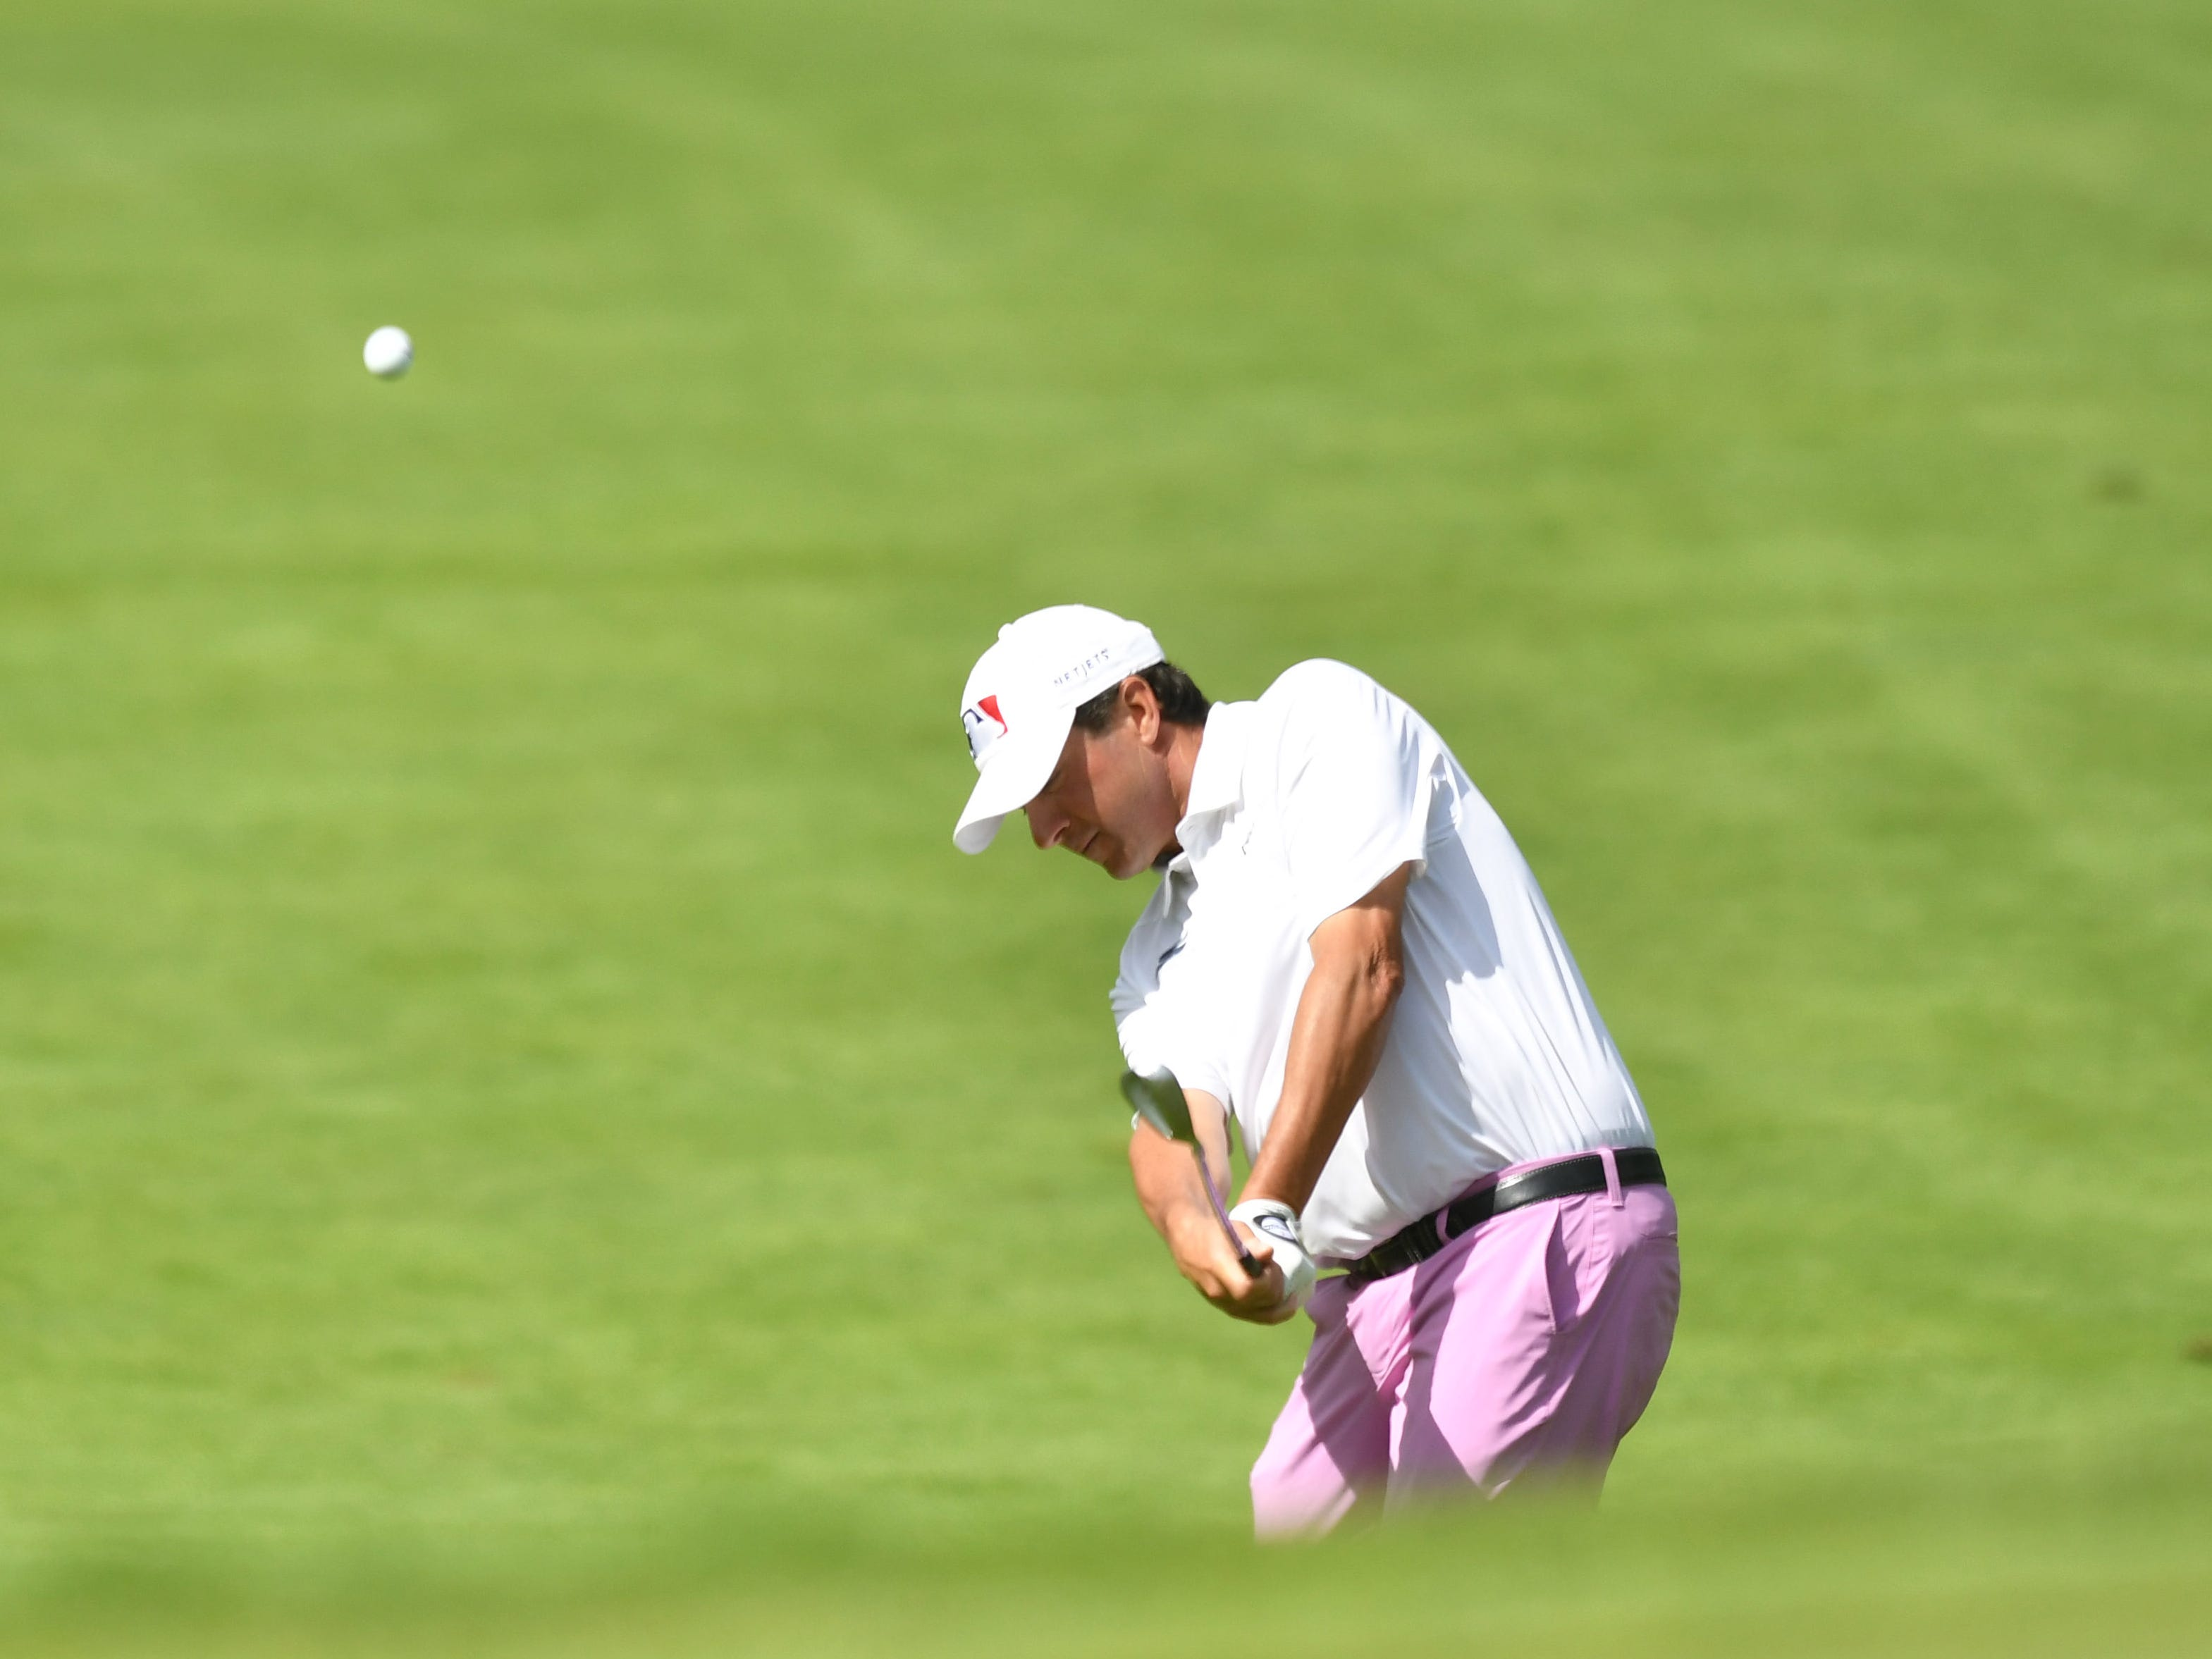 Billy Andrade hits his approach shot on the first hole at the Ally Challenge.